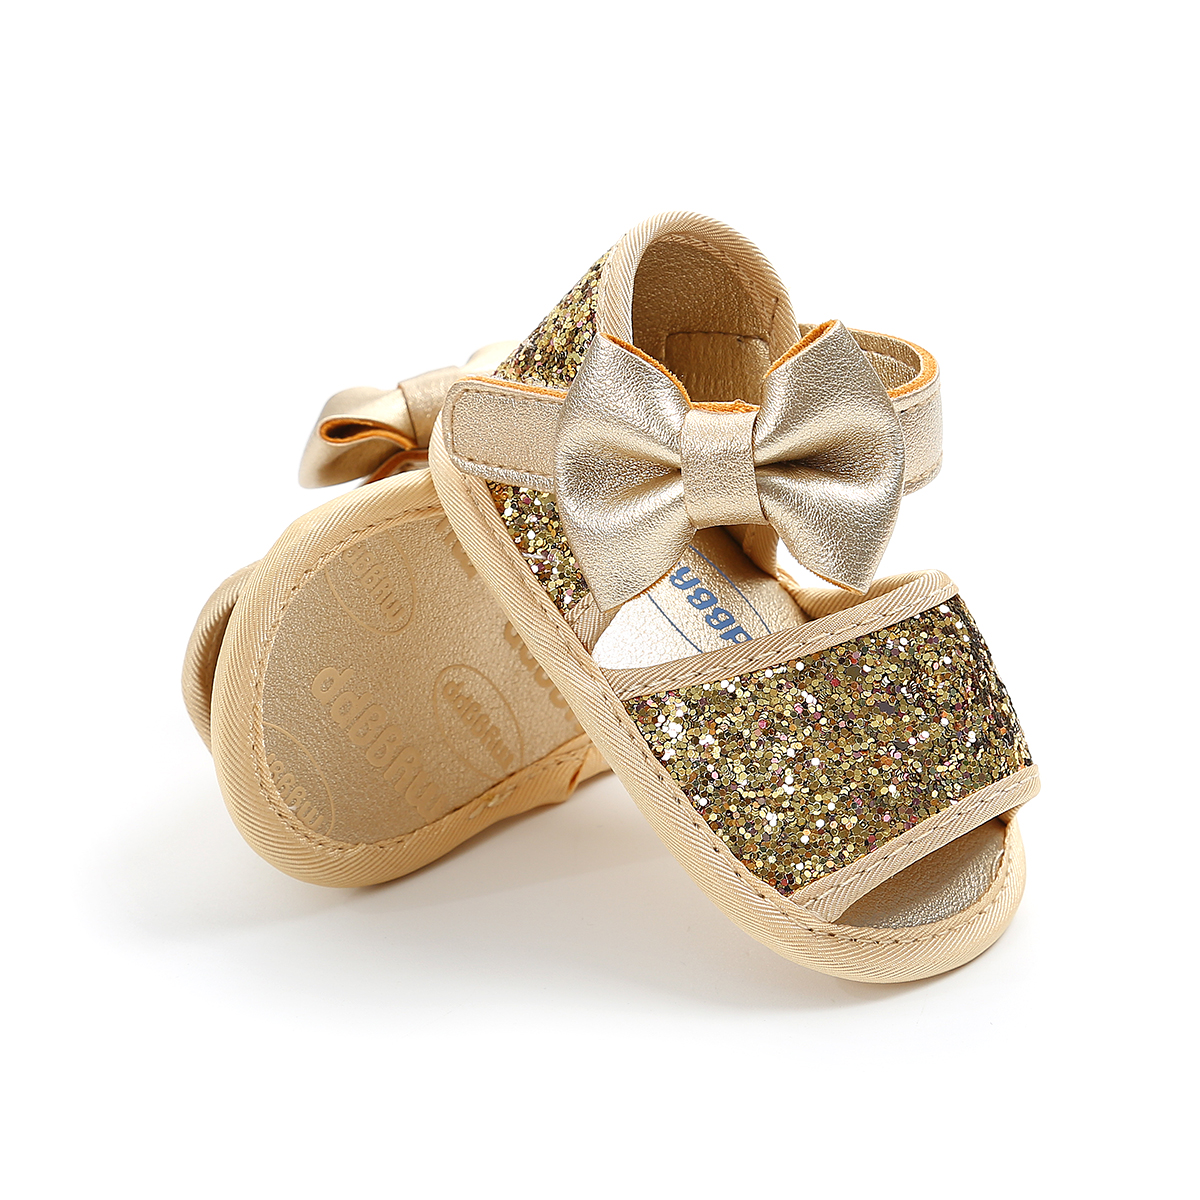 Pudcoco New Brand Baby Kids Girl Sequins Sandals Summer Children Breathable Antiskid Leather Shoes